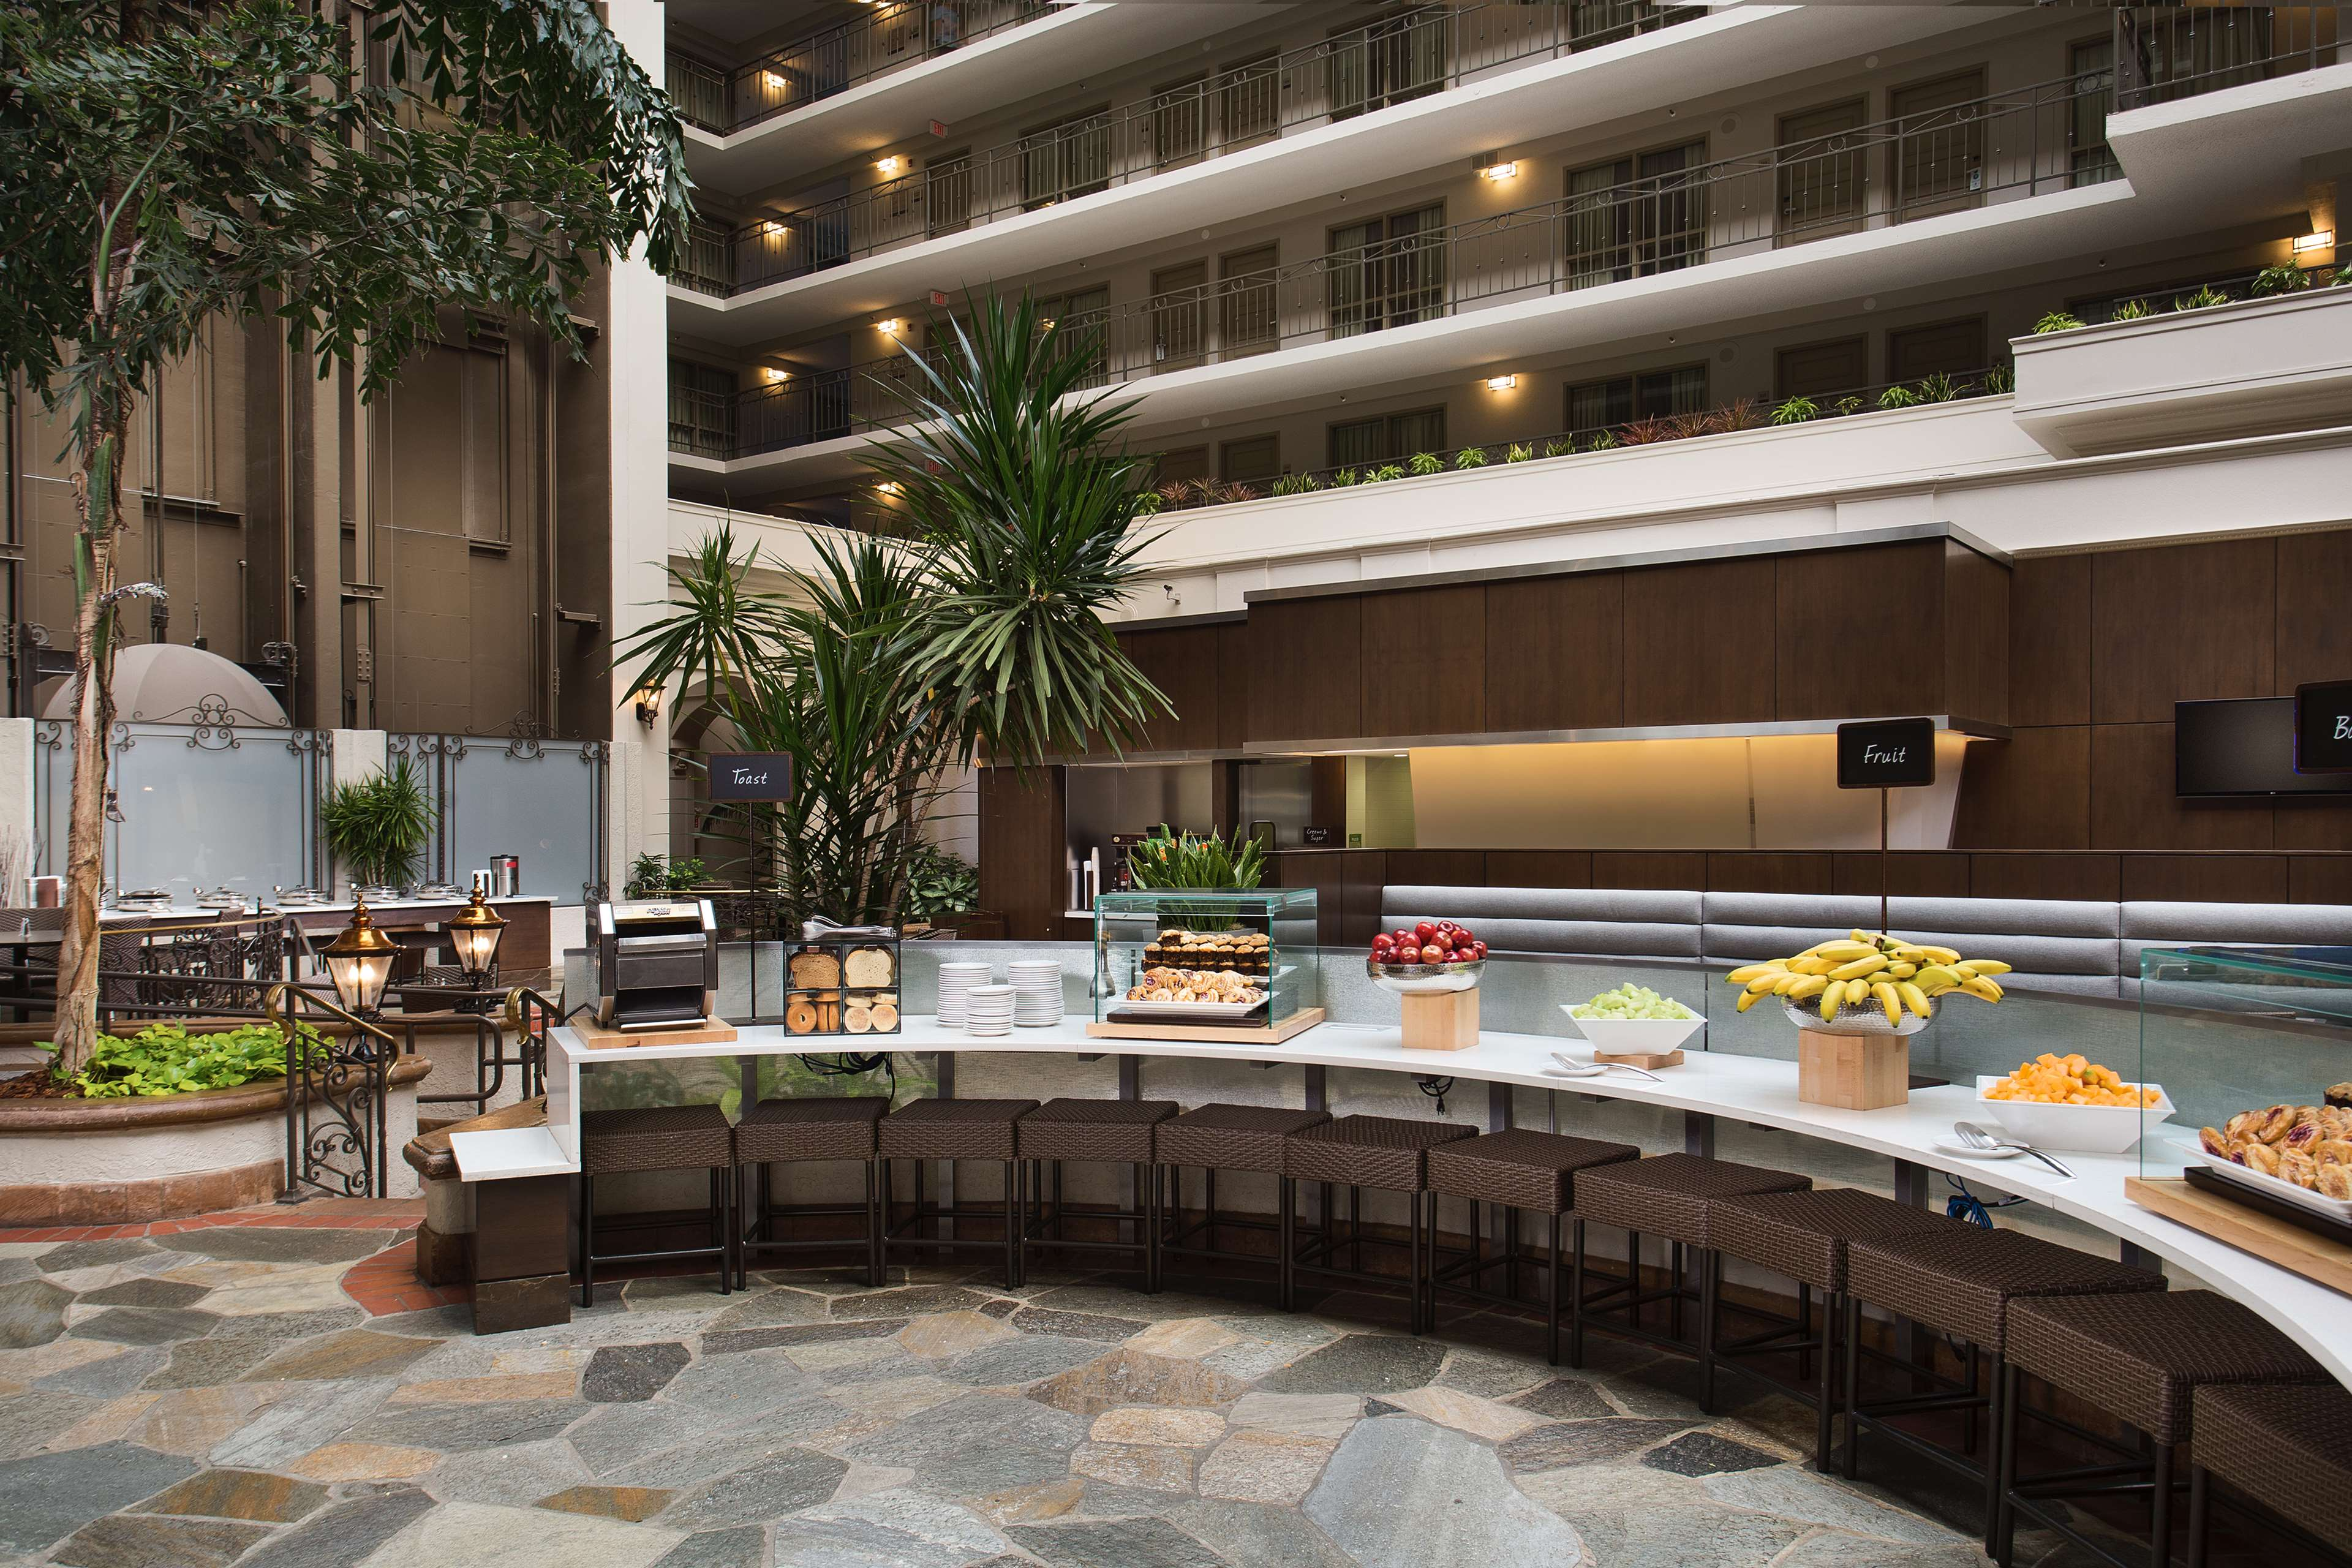 Embassy Suites by Hilton San Francisco Airport Waterfront image 0